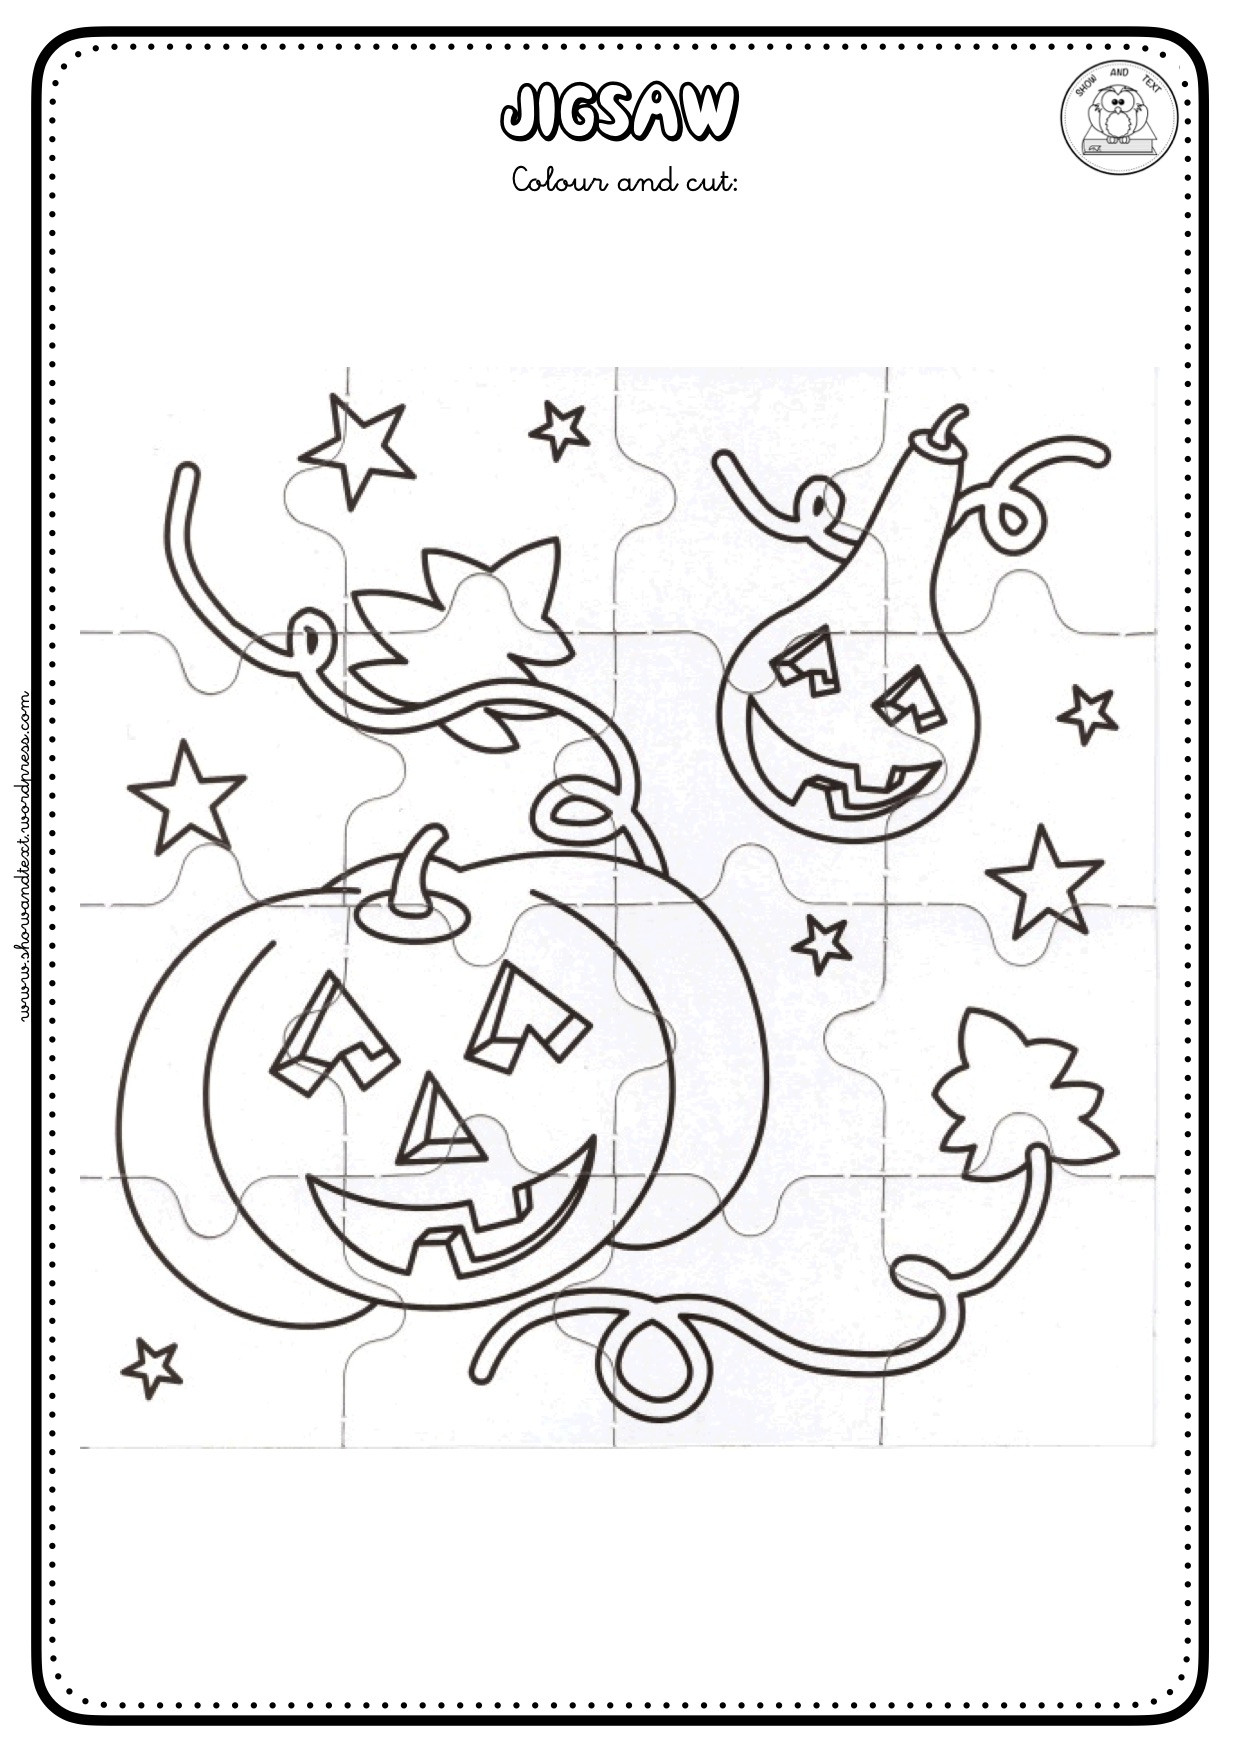 Pronoun Worksheets 2nd Grade Halloween Show and Text Pronoun Worksheets Blog My Math